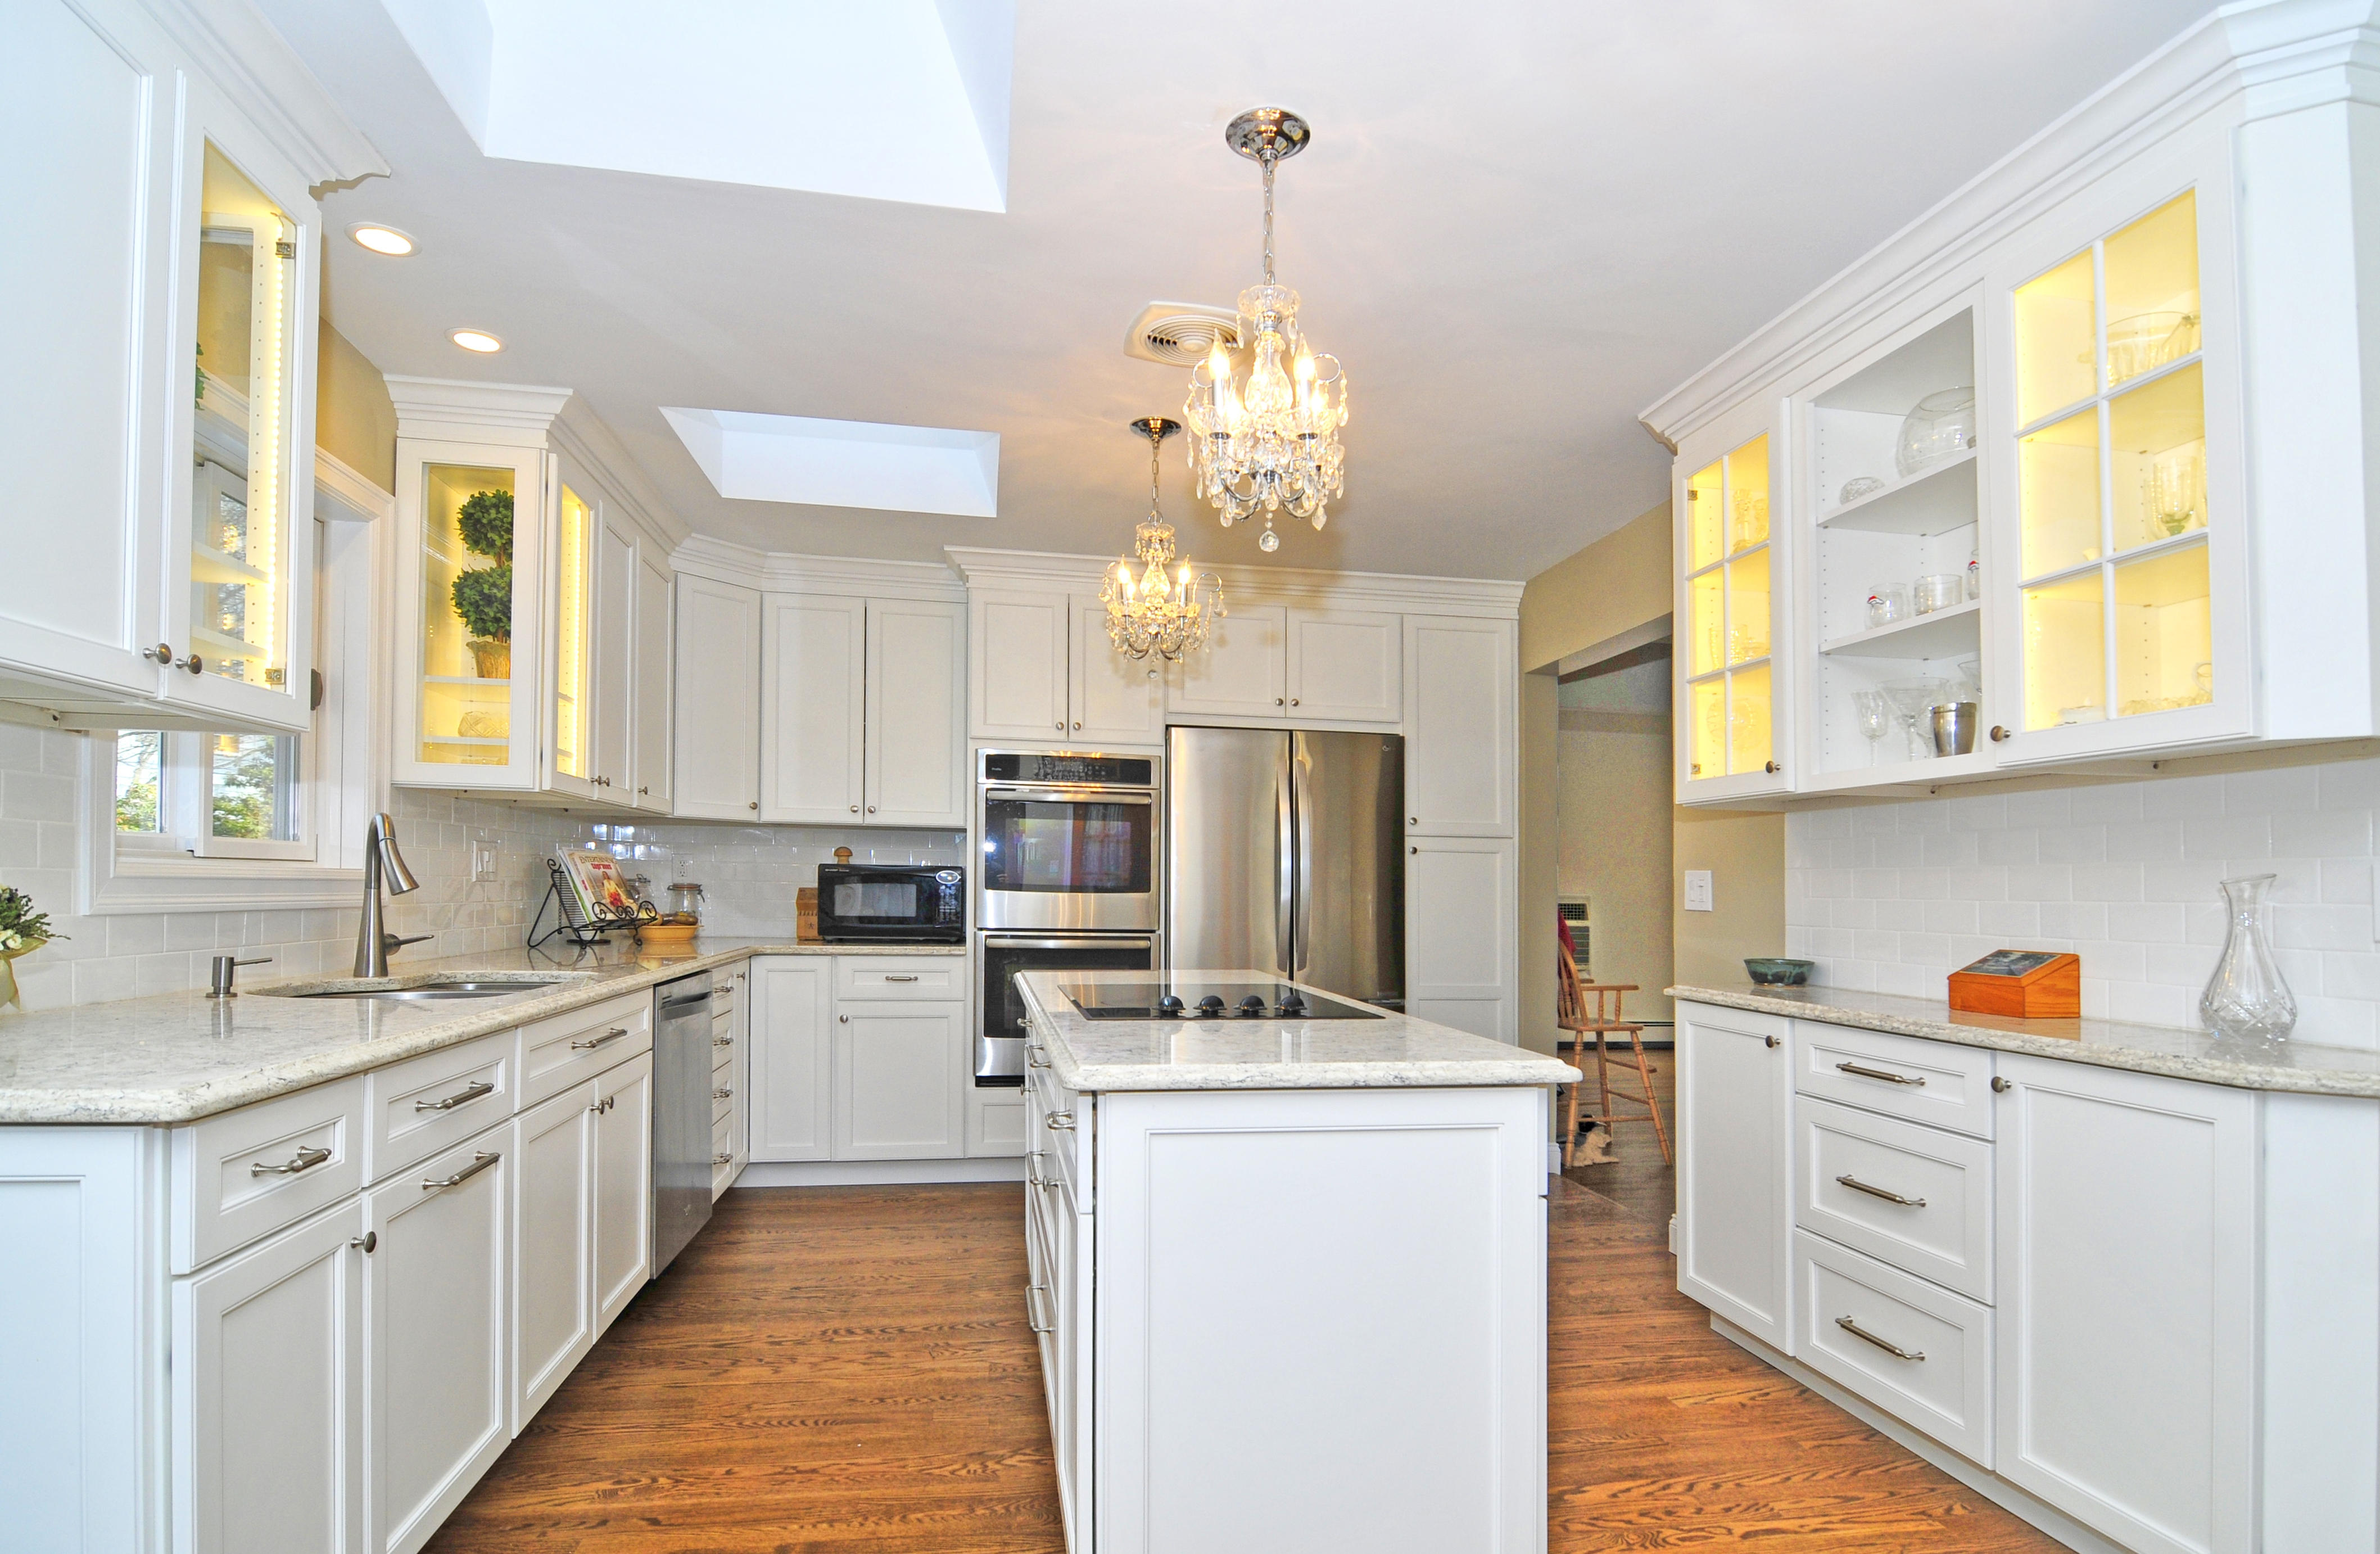 Kitchen Remodeling Services in Long Island NY